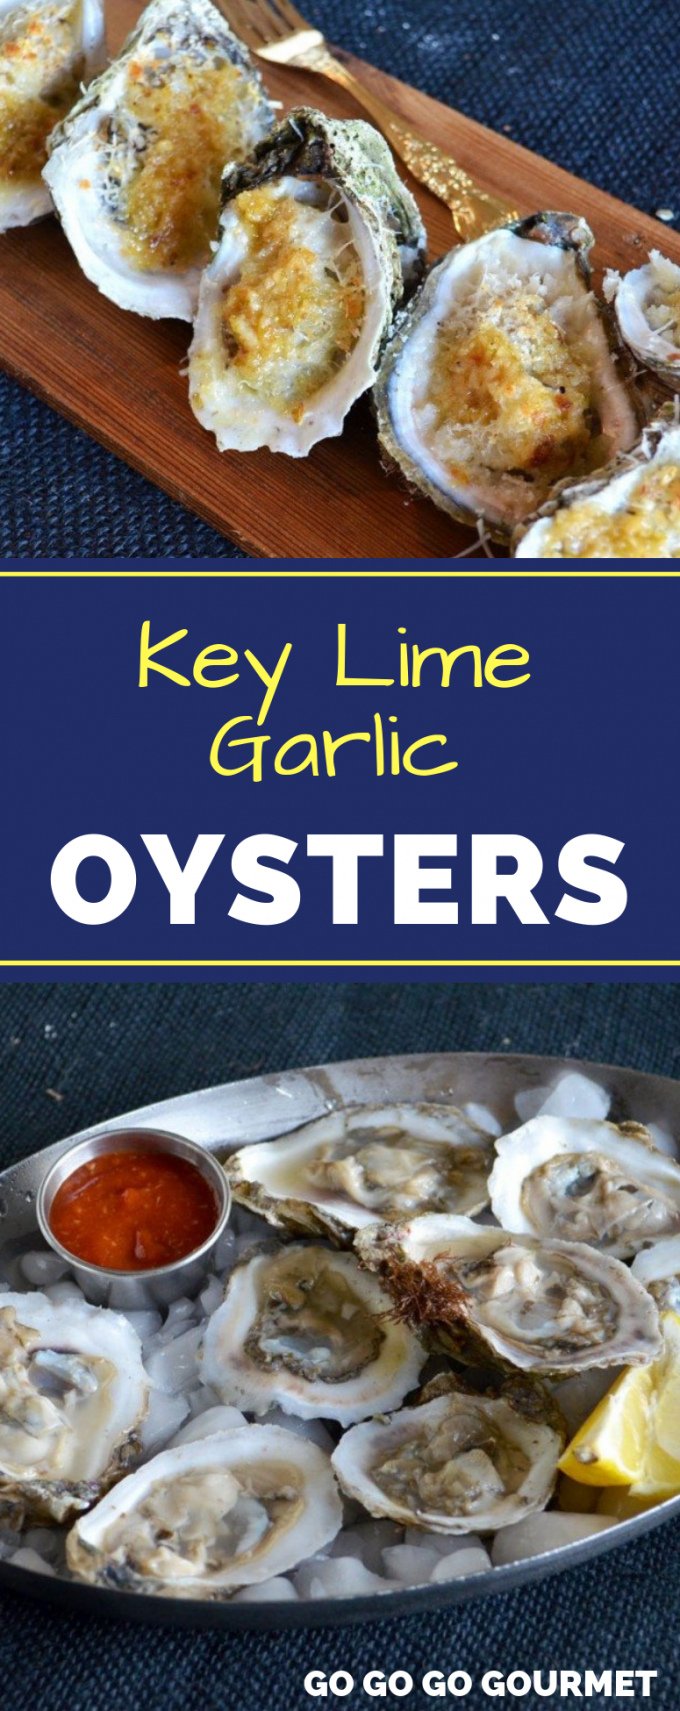 These Key Lime Garlic Oysters are one of the best oyster recipes! Baked (or even grilled!) oysters are so much easier to shuck! Serve with crackers, or even on the half shell for an awesome seafood appetizer! #gogogogourmet #keylimegarlicoysters #oysterrecipes #easyoysters via @gogogogourmet